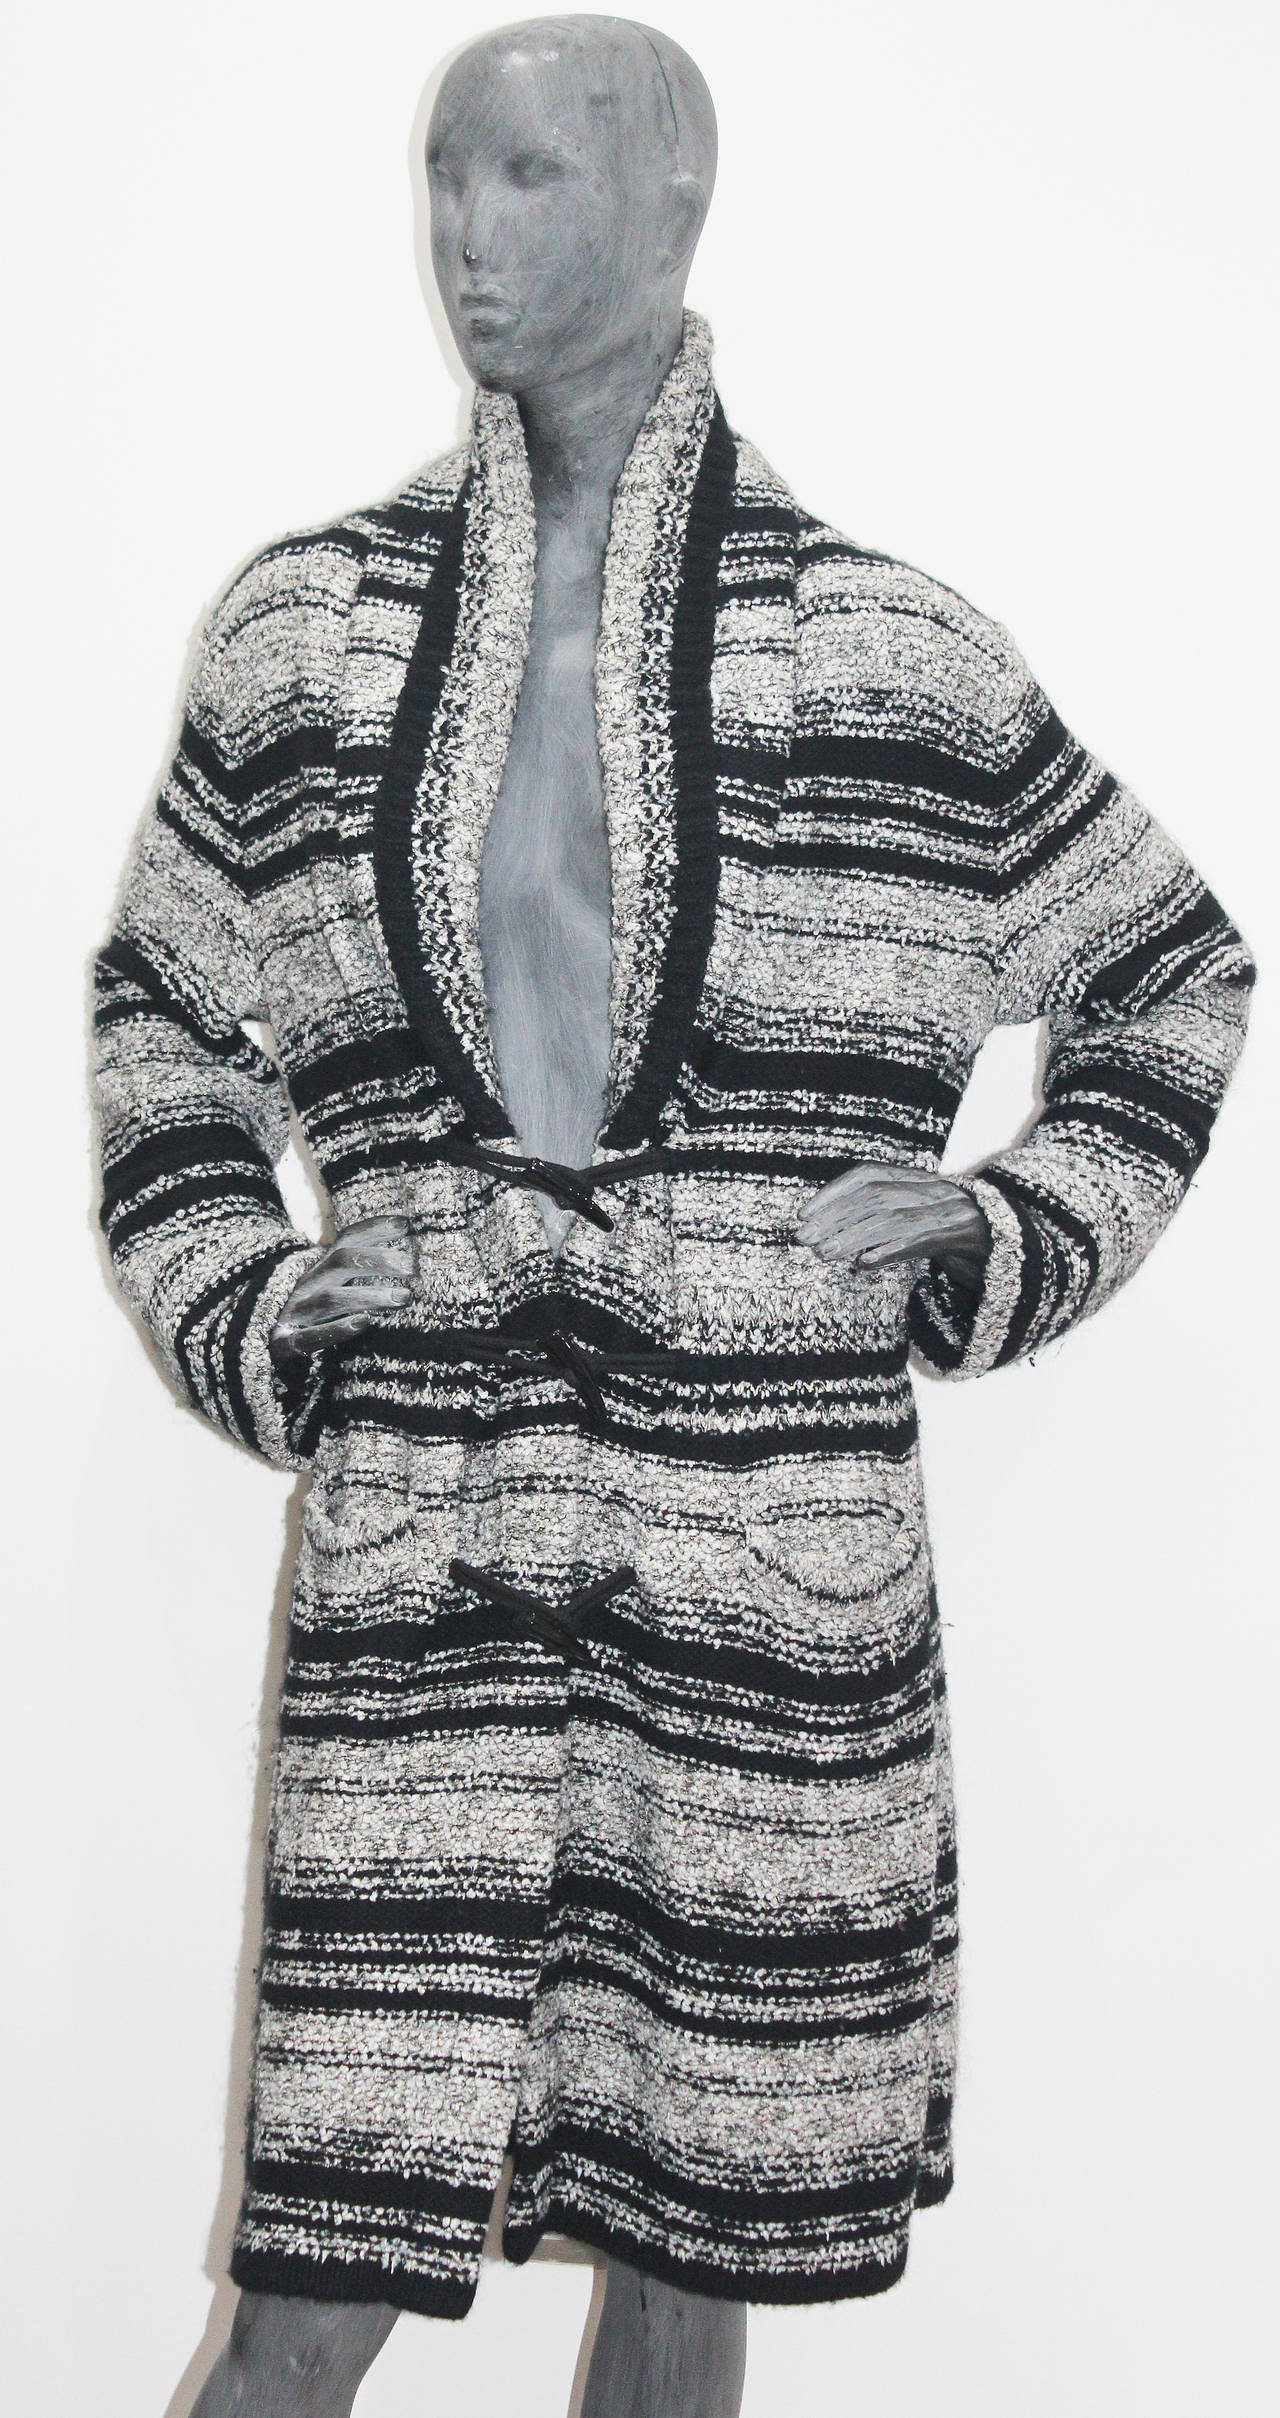 Chanel Oversized Knitted Tweed Cardigan Coat c. 2006 2